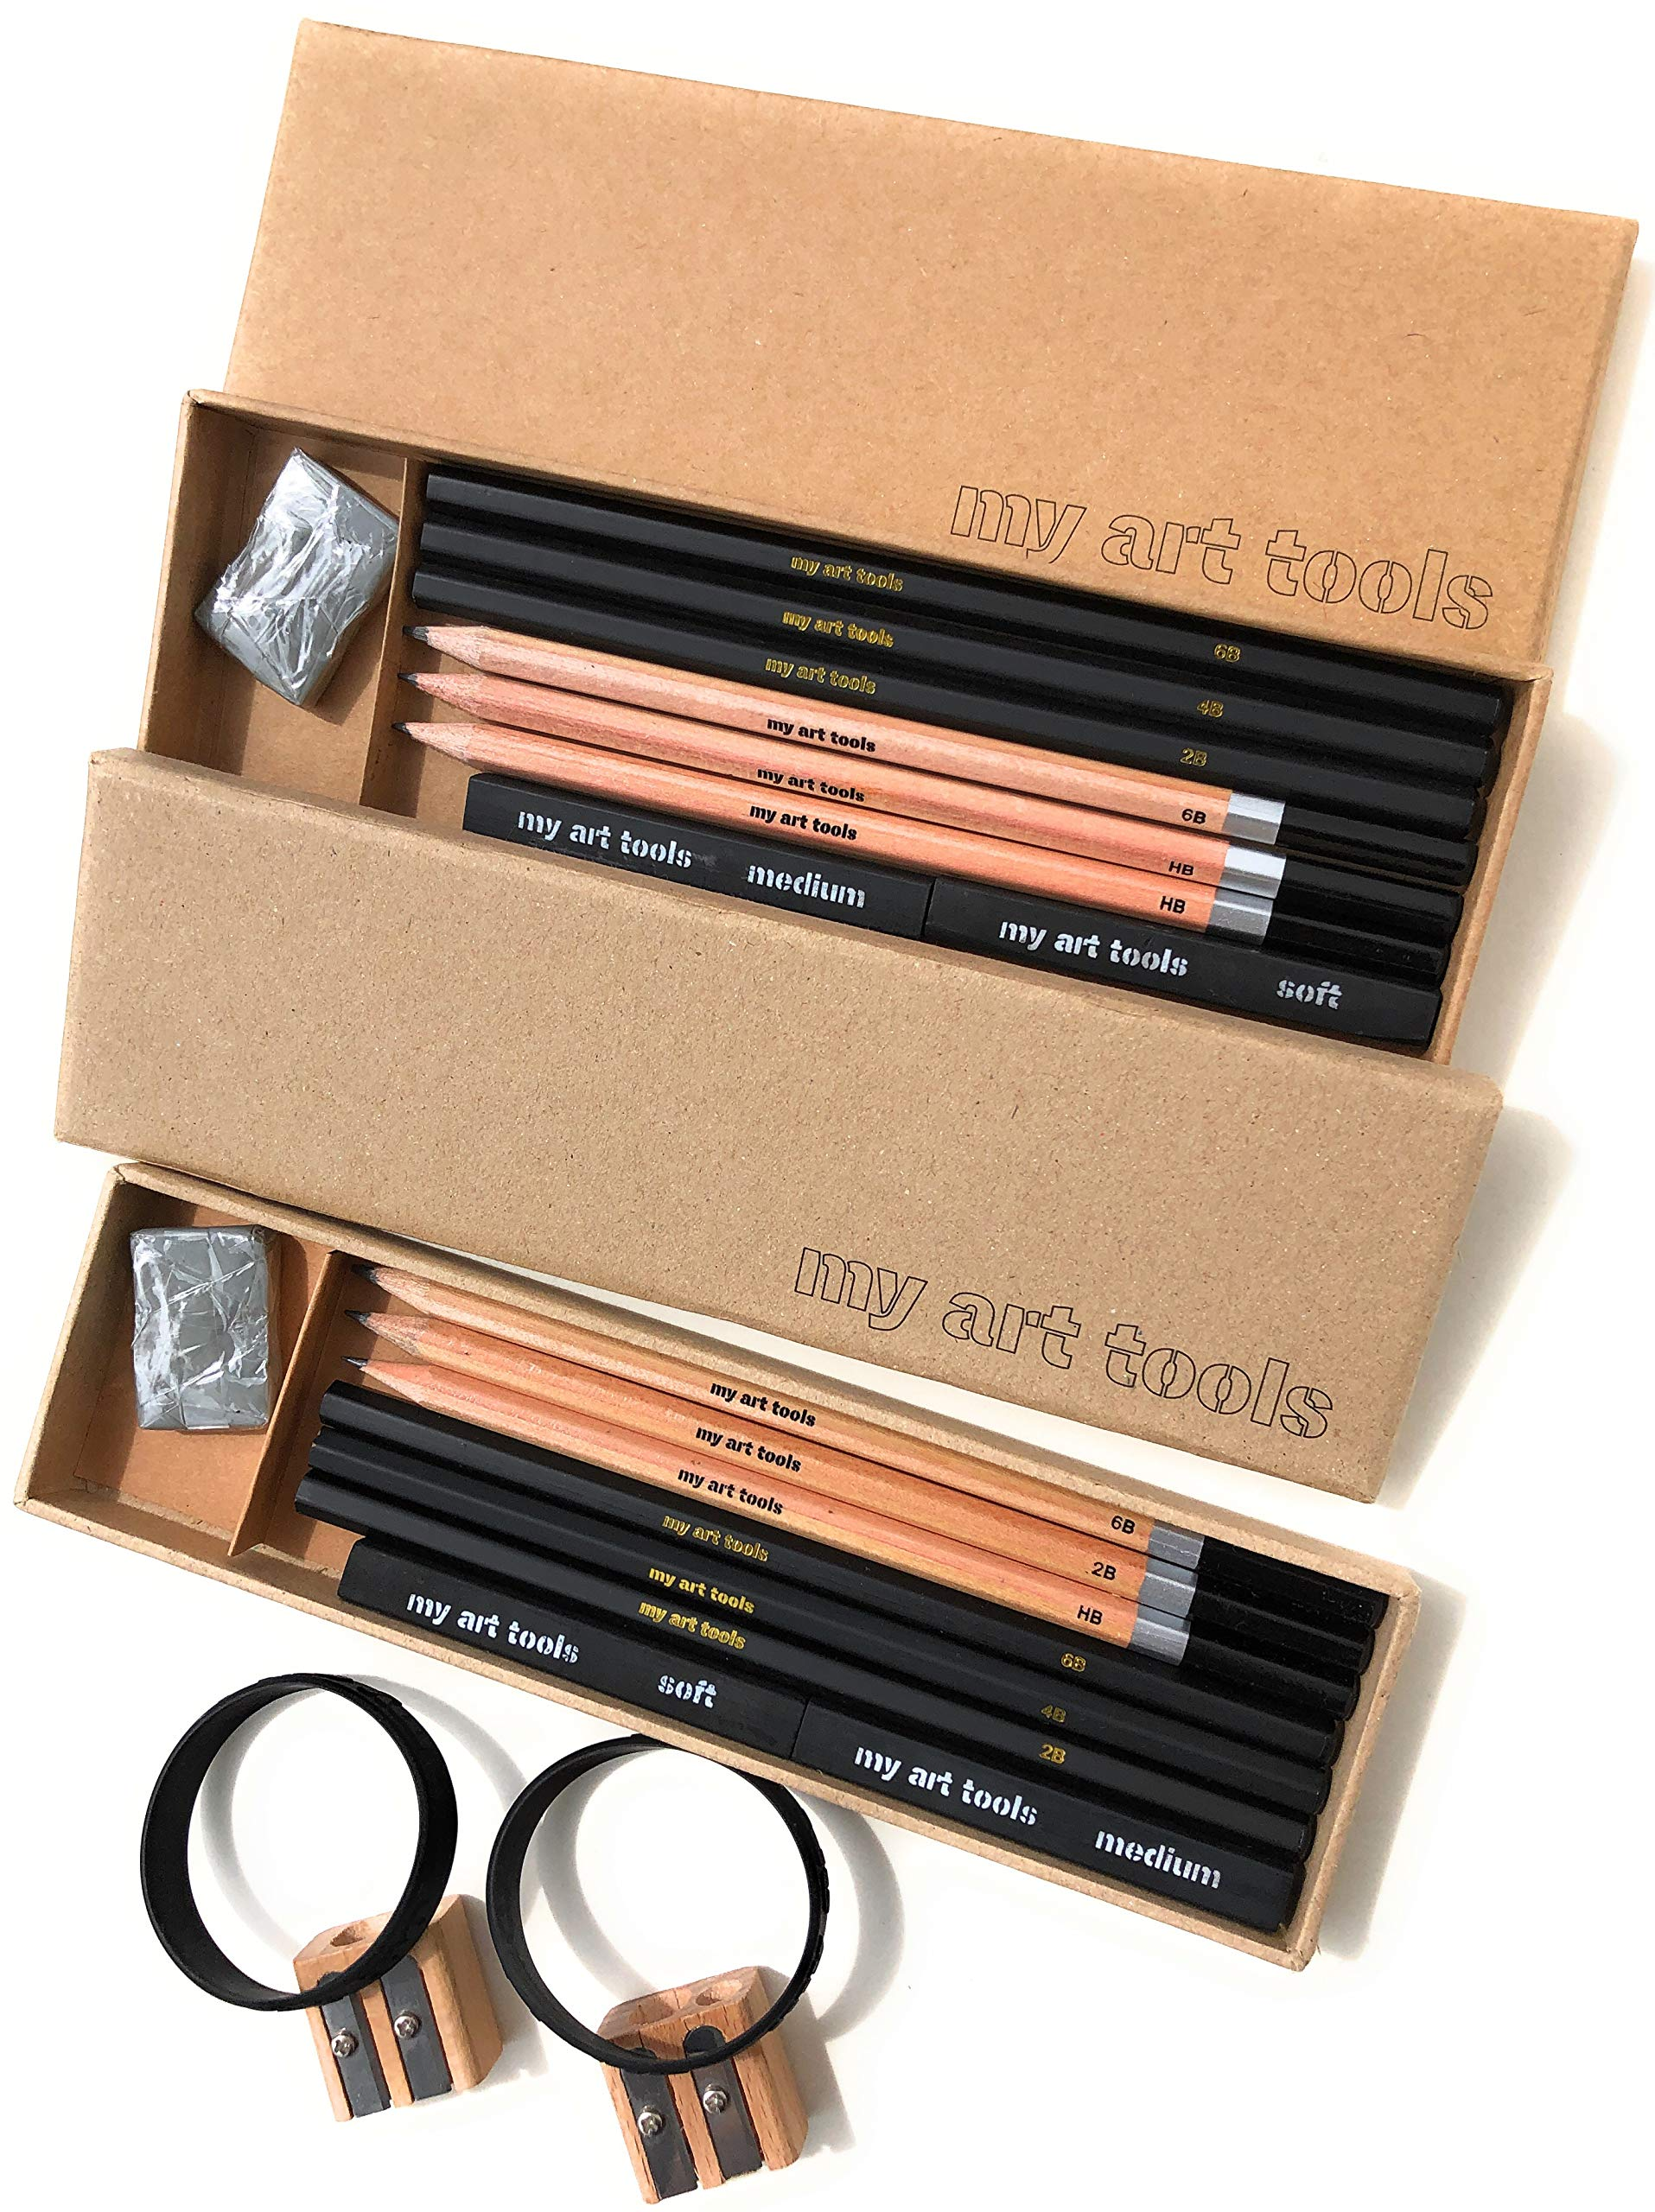 MY ART TOOL DRAWING PENCIL - Kits for Professional Sketch Artists Include Charcoal & Graphite, supplies, Compressed Sticks,Sharpener, Kneaded Eraser in 2 Art Kits, 10 Pieces EACH set - non plastic box by my art tools